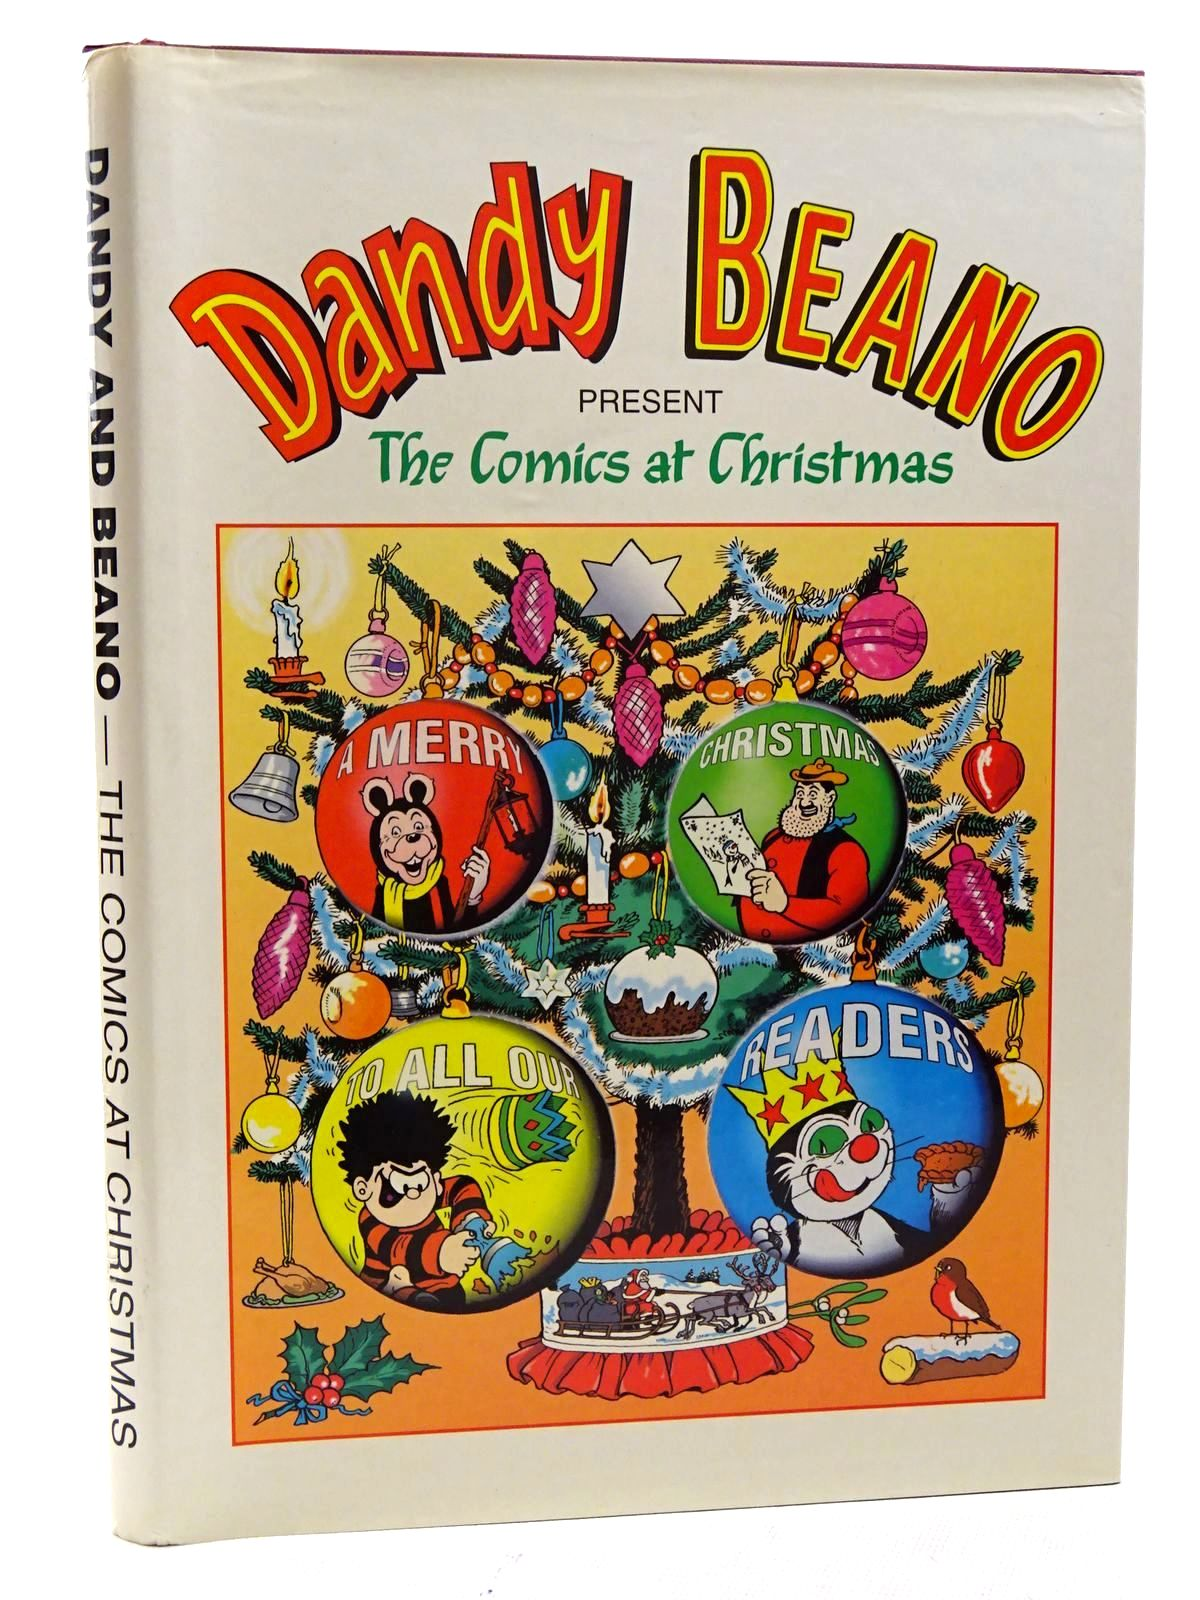 Photo of DANDY AND BEANO - THE COMICS AT CHRISTMAS published by D.C. Thomson & Co Ltd. (STOCK CODE: 2125444)  for sale by Stella & Rose's Books